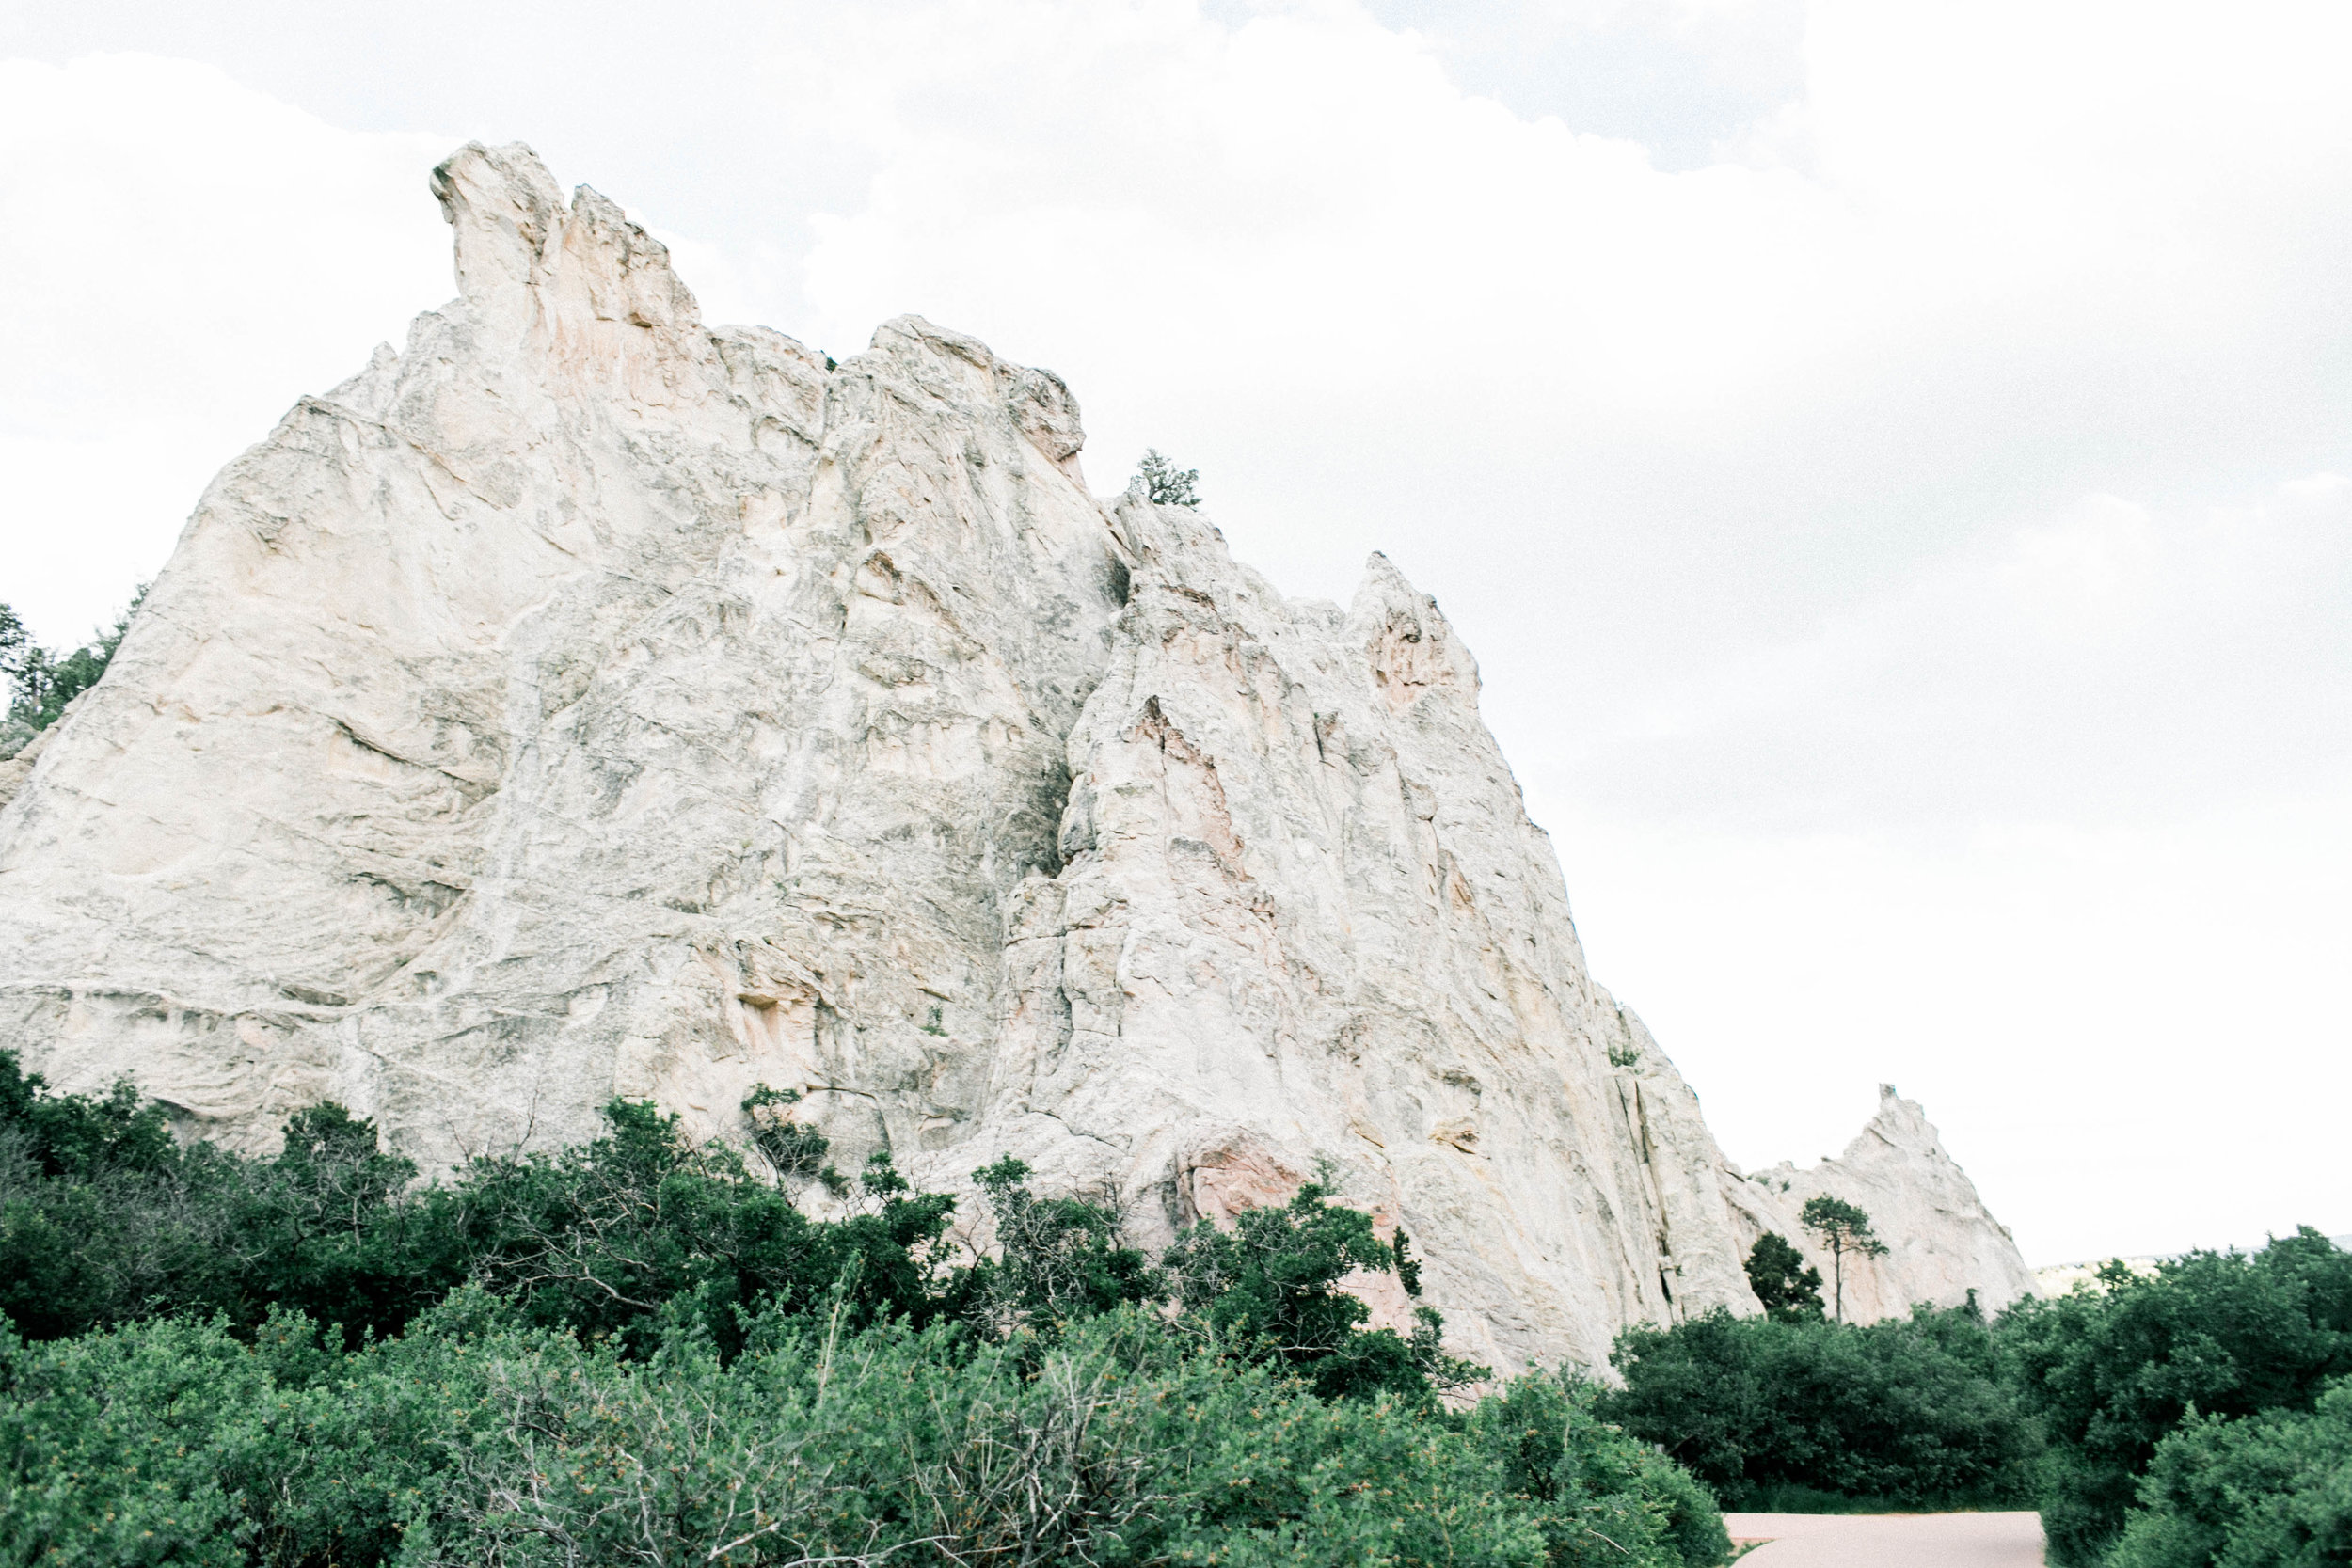 Colorado Springs Engagement Wedding Adventure Photographer - Erin and Jim 09.jpg